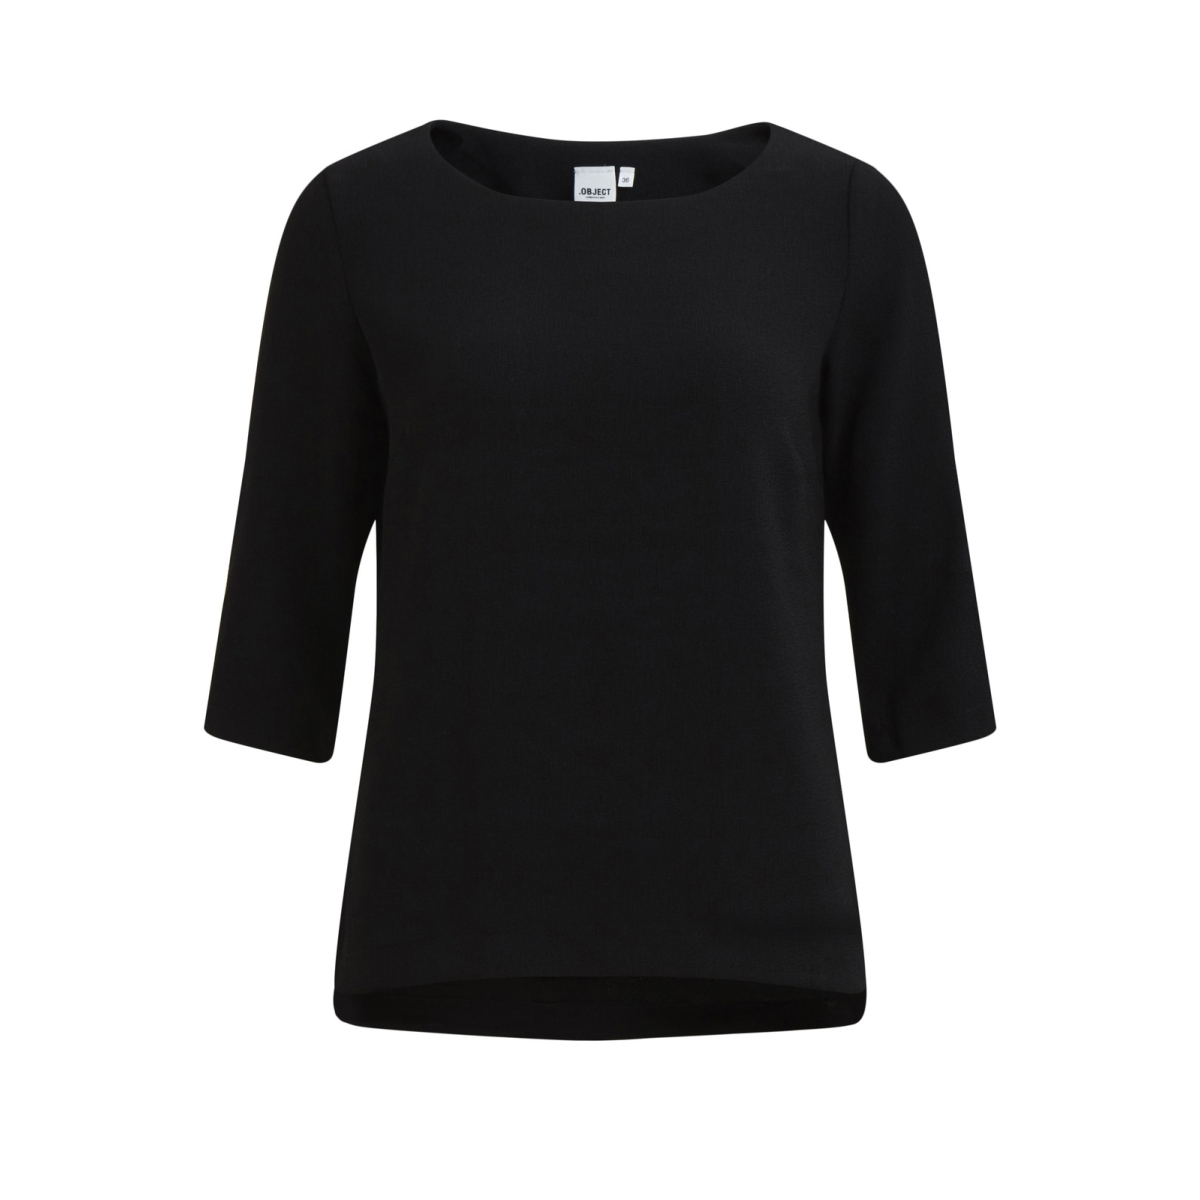 objcorlee 3/4 top noos 23024282 object t-shirt black